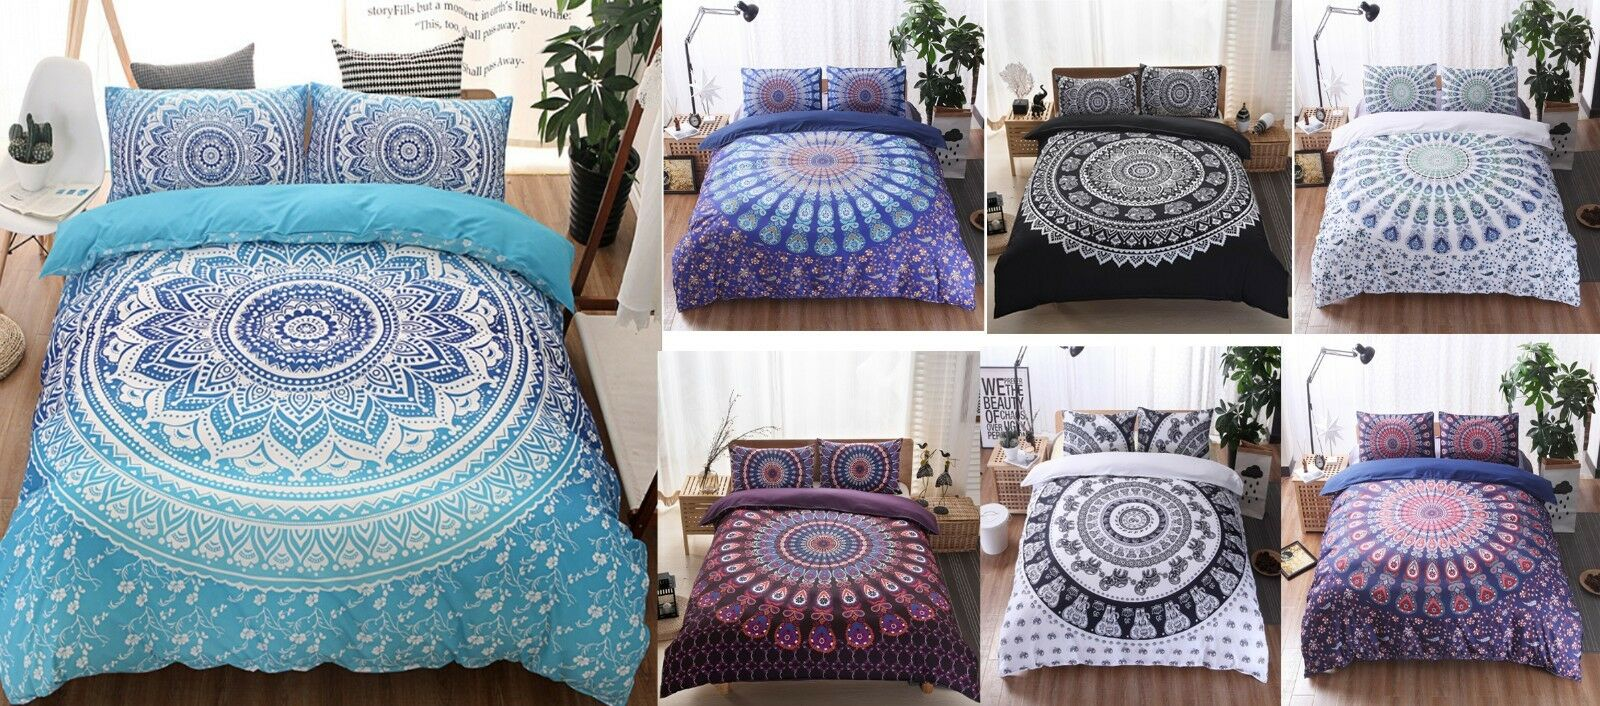 Beautiful Bohemian Style Twin Queen King 2 3 PCs Duvet Covers Pillowcases Set